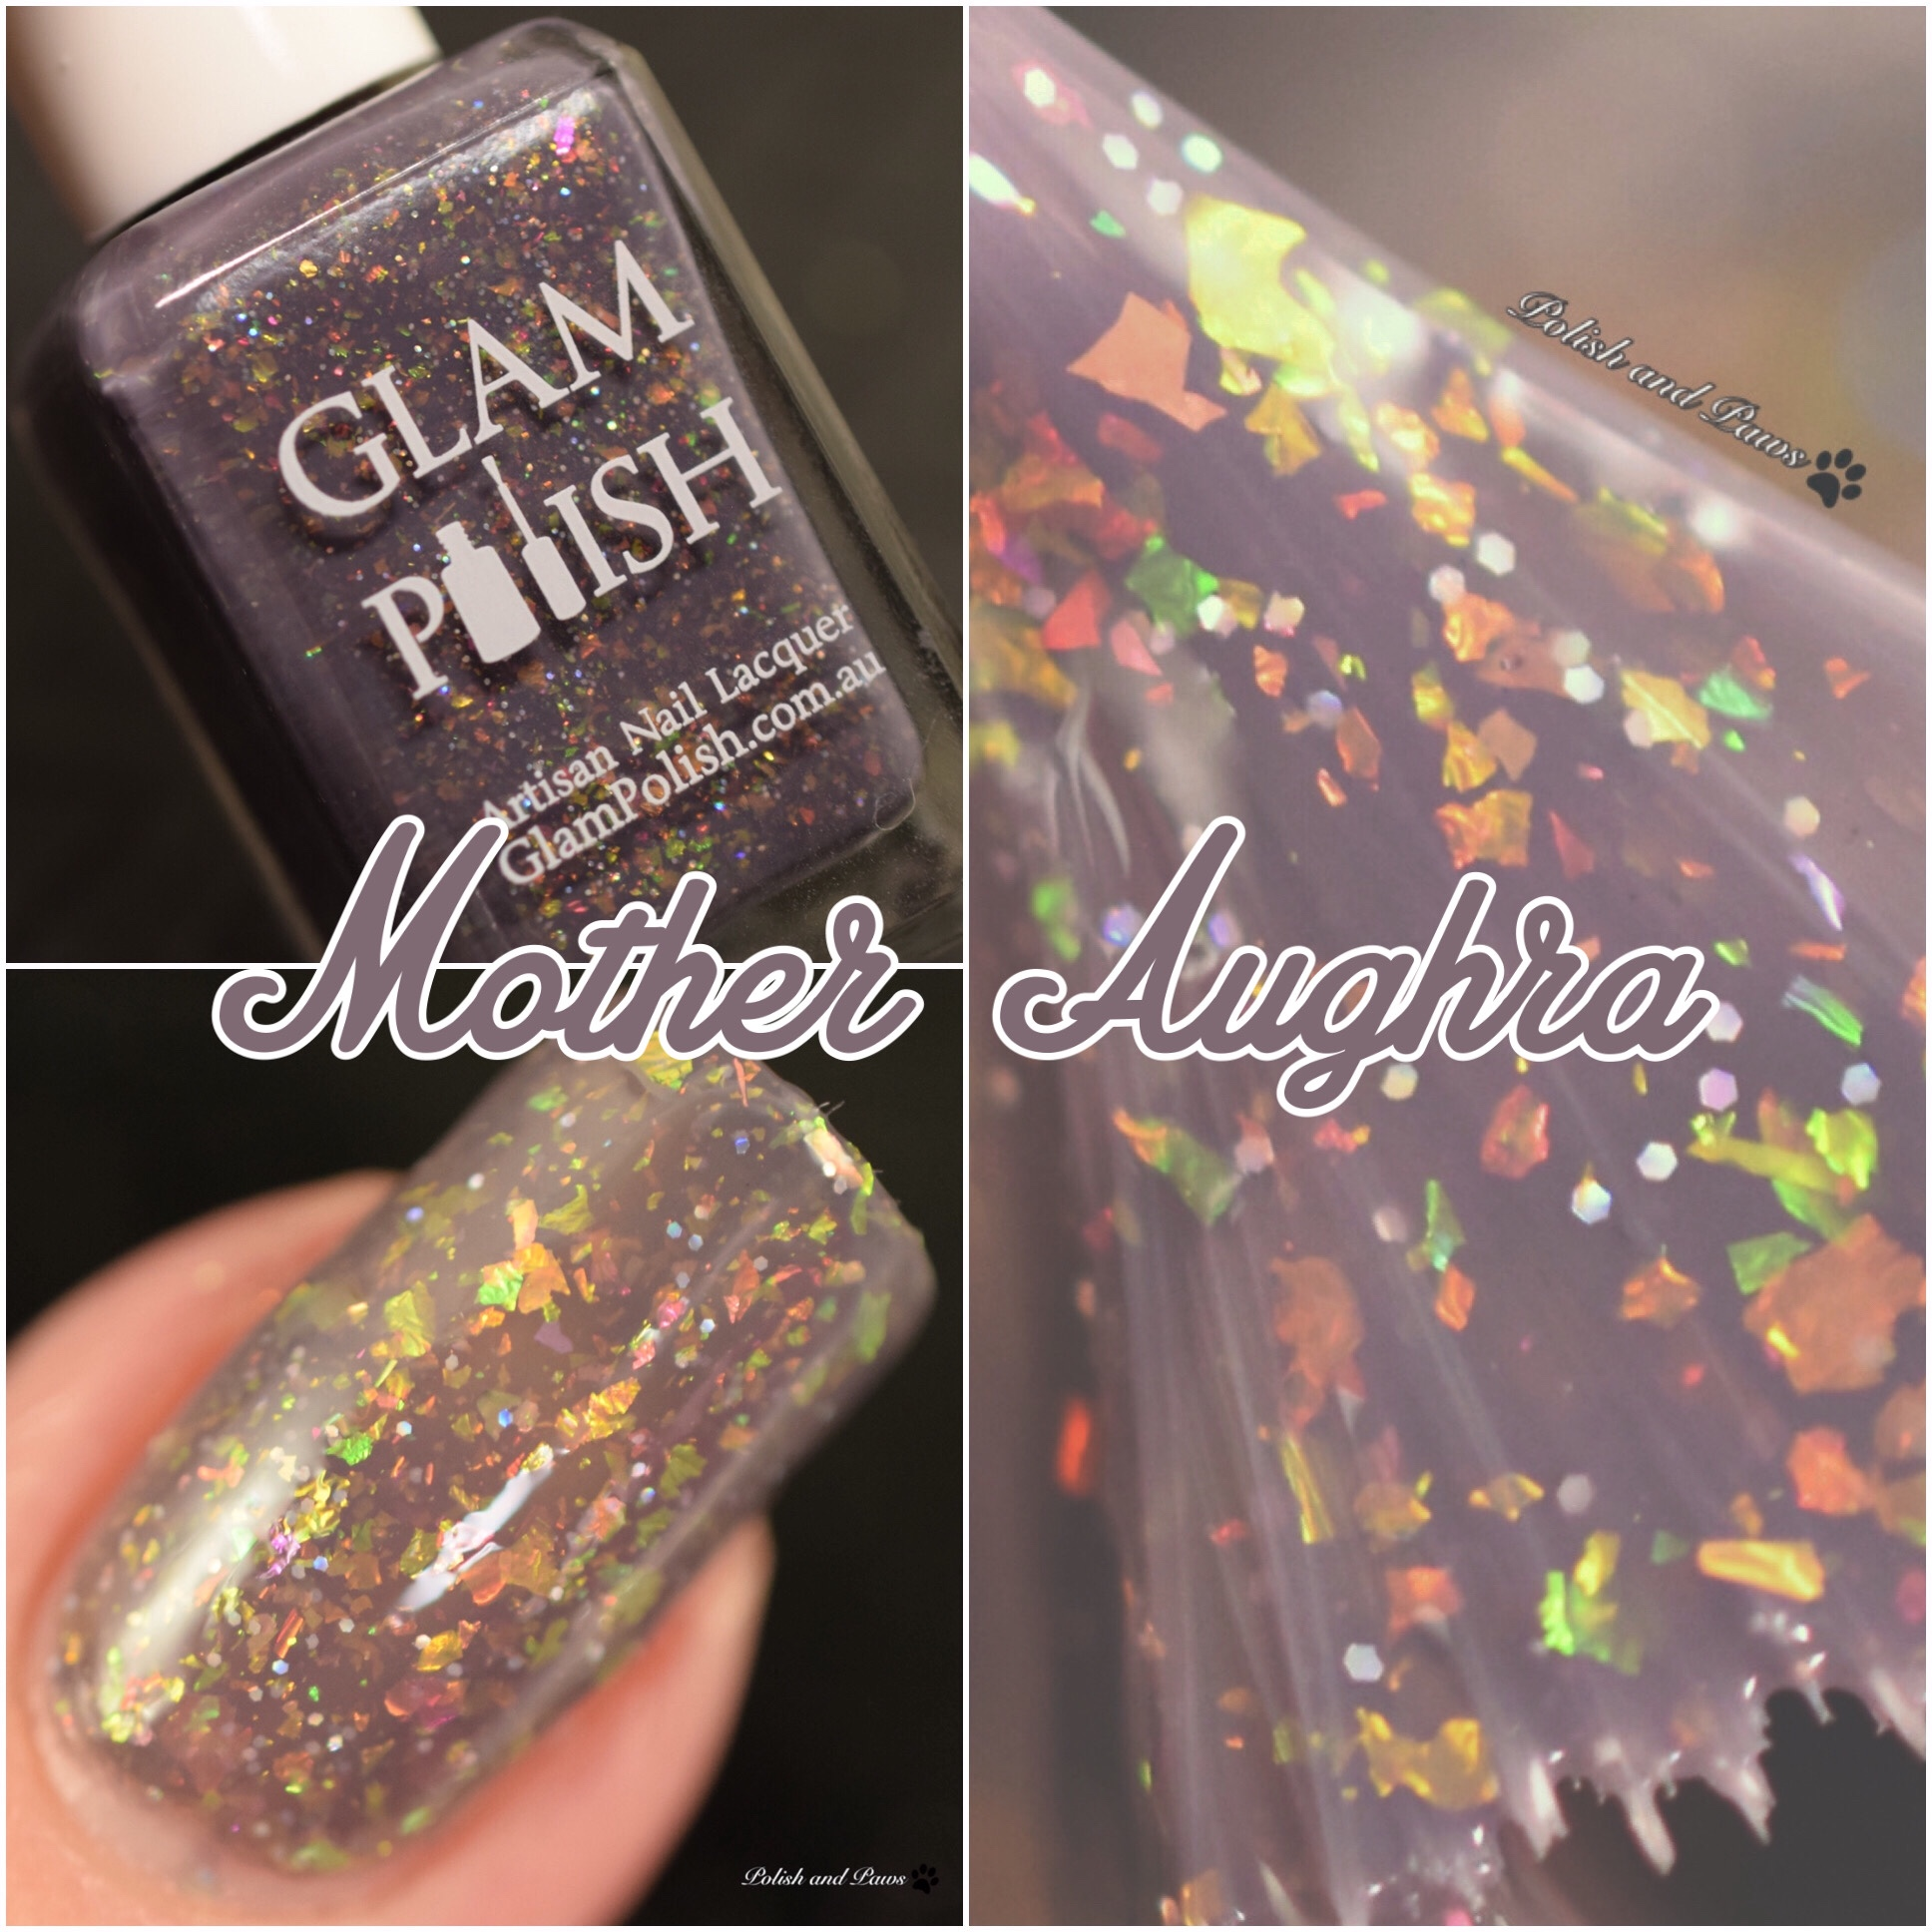 Glam Polish Mother Aughra